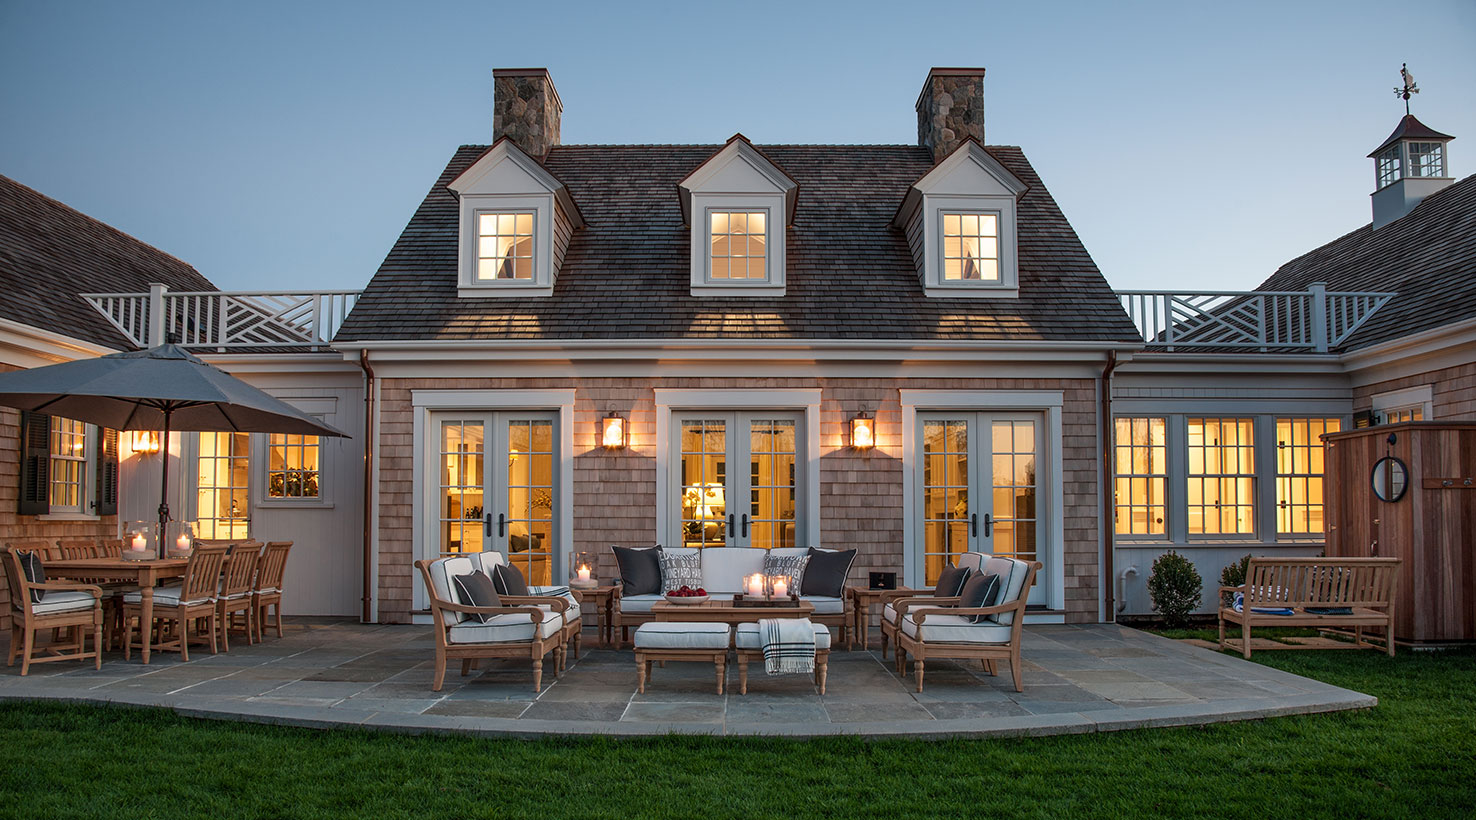 Hgtv dream home 2015 the look of hgtv sponsored by American dream homes plans